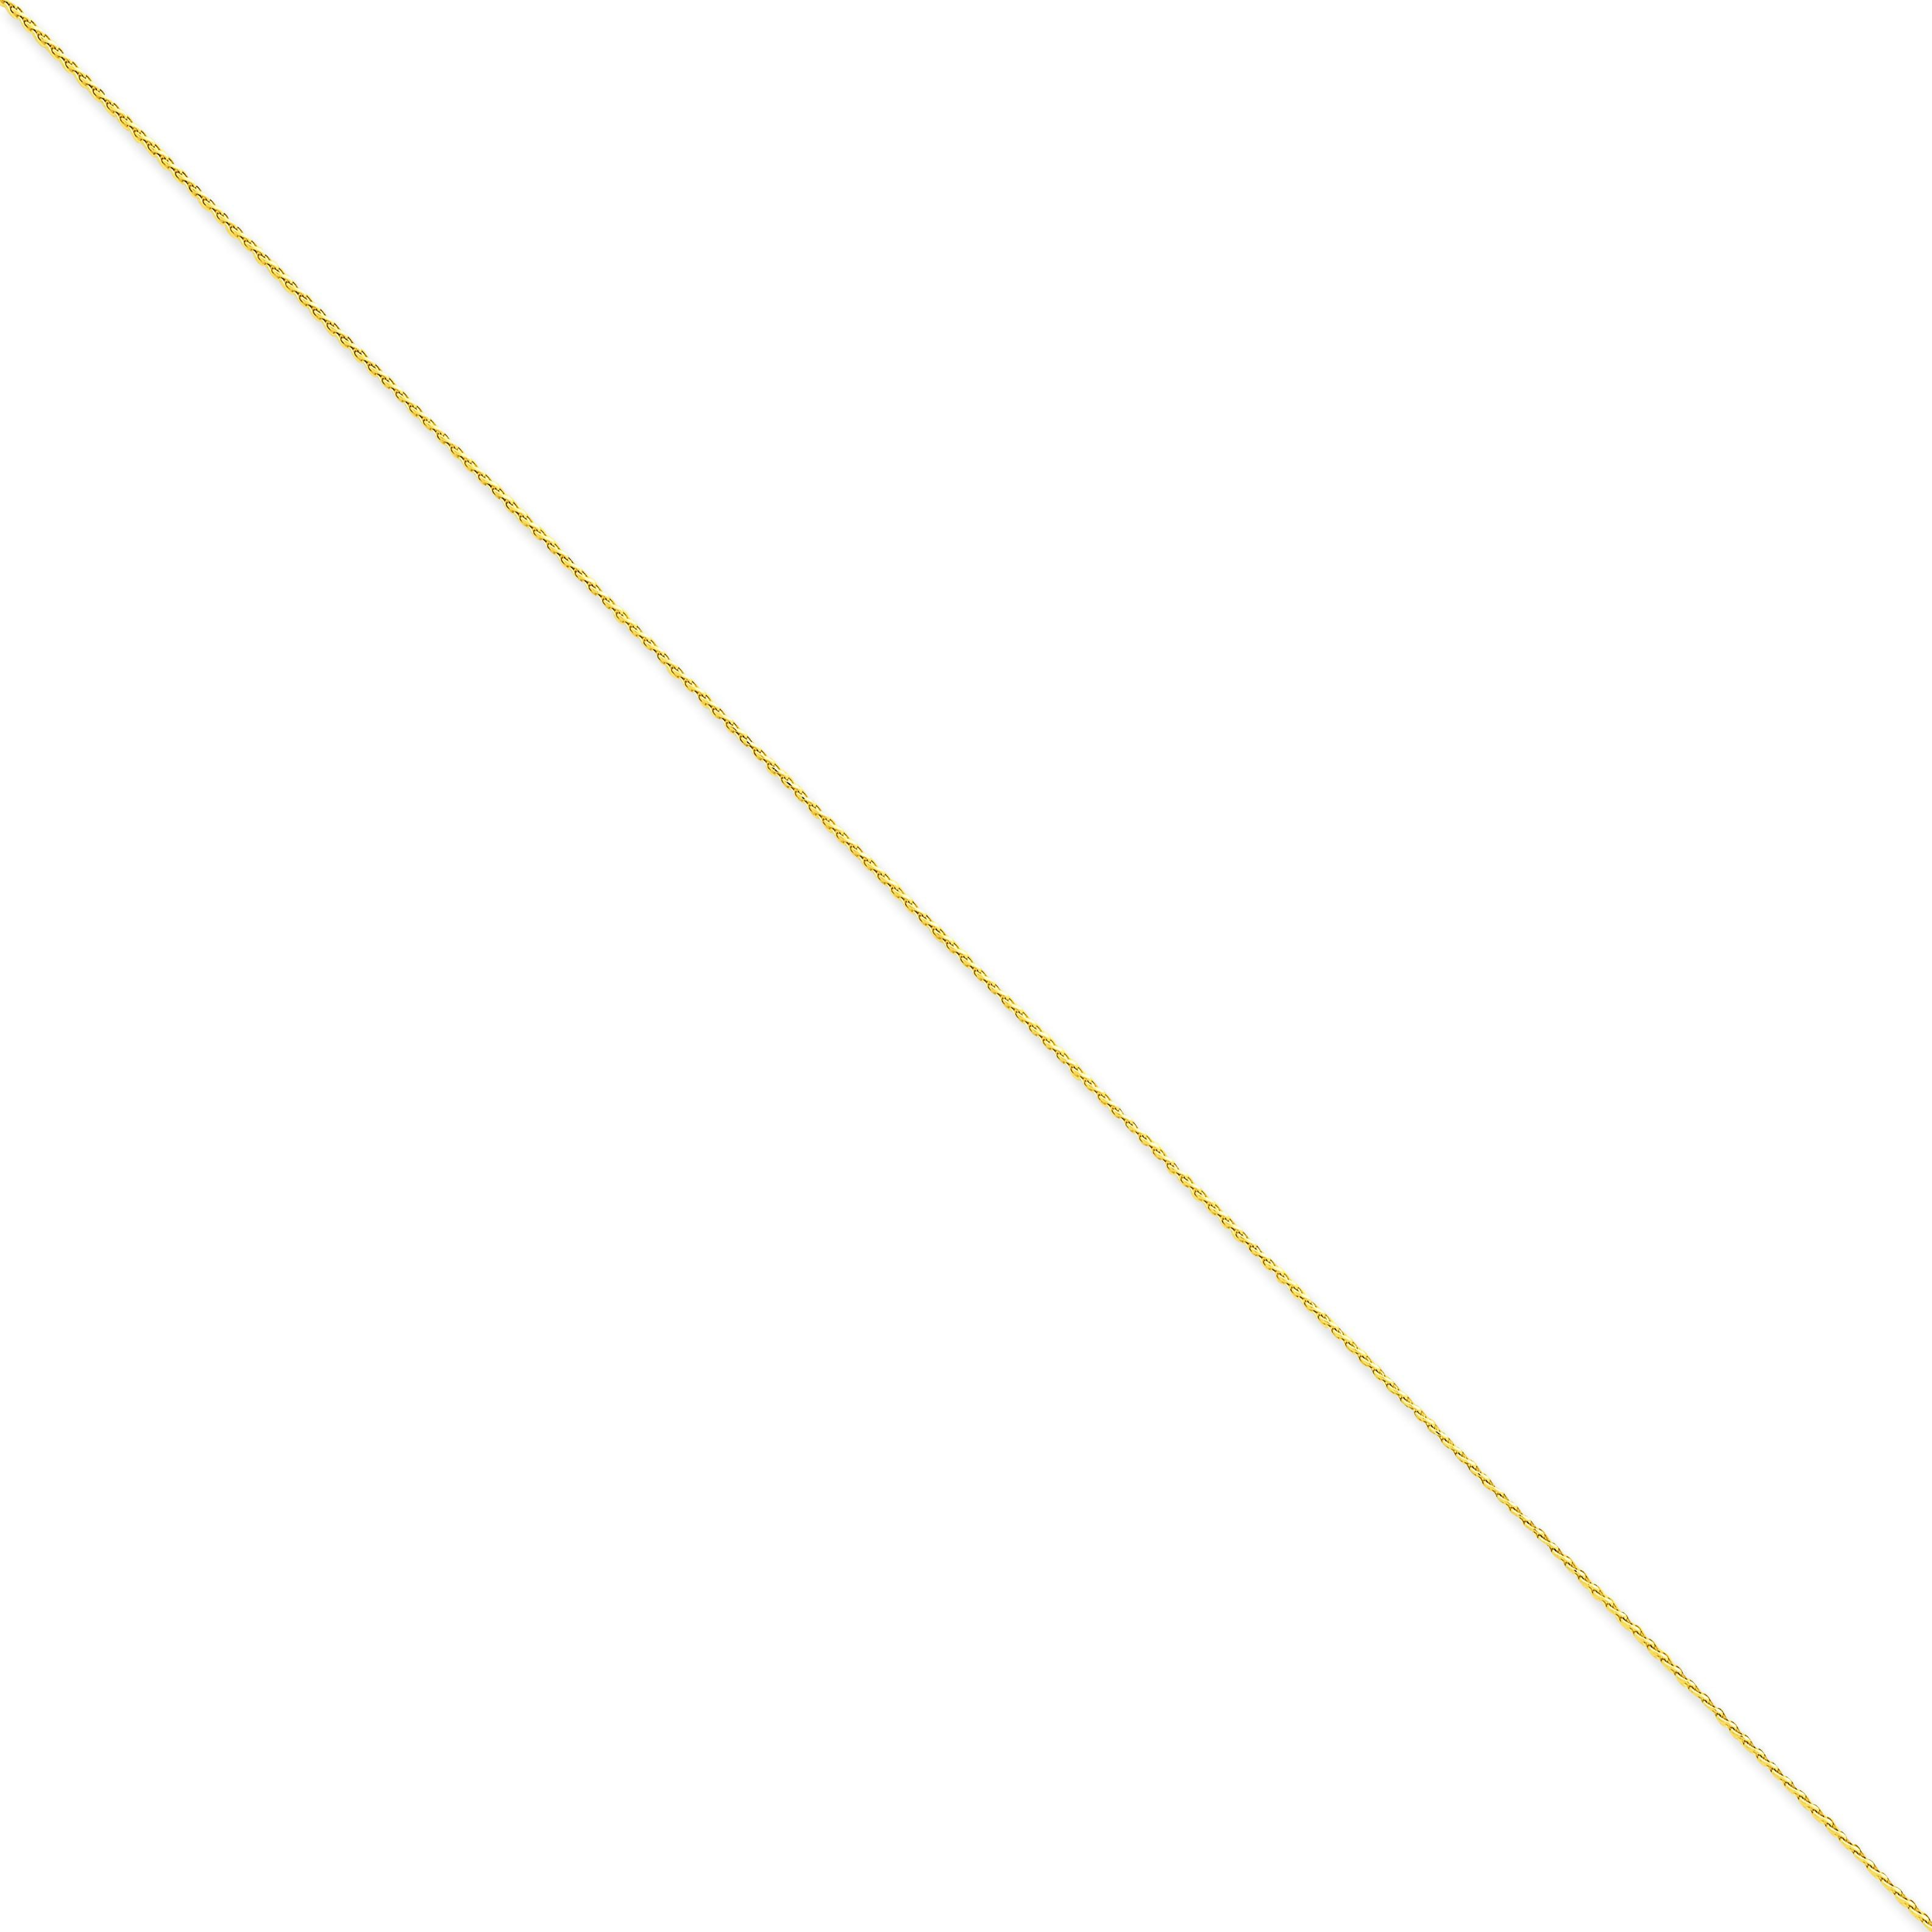 14k Yellow Gold 16 inch 1.00 mm Diamond-cut Spiga Choker Necklace